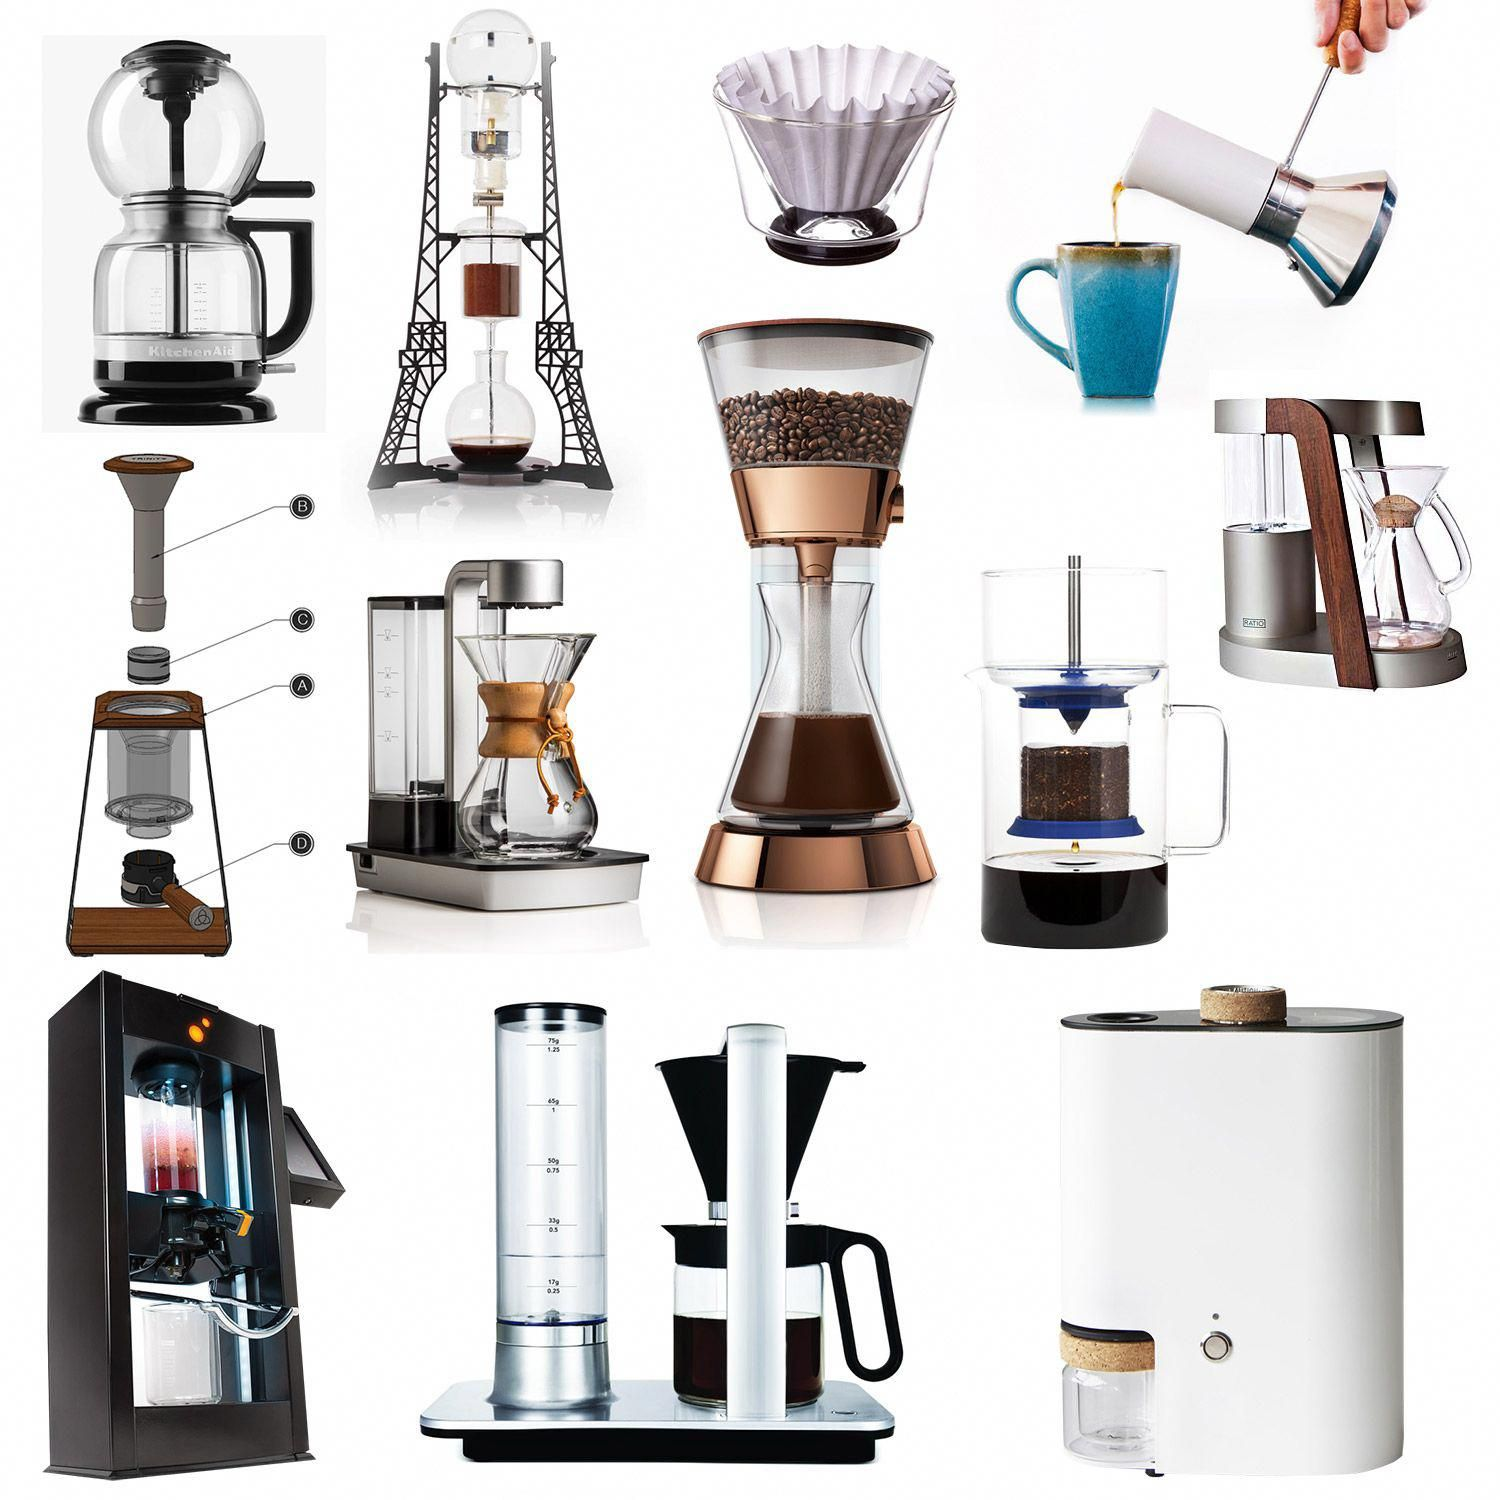 12 of the Best in Coffee Brewing Technology Best coffee